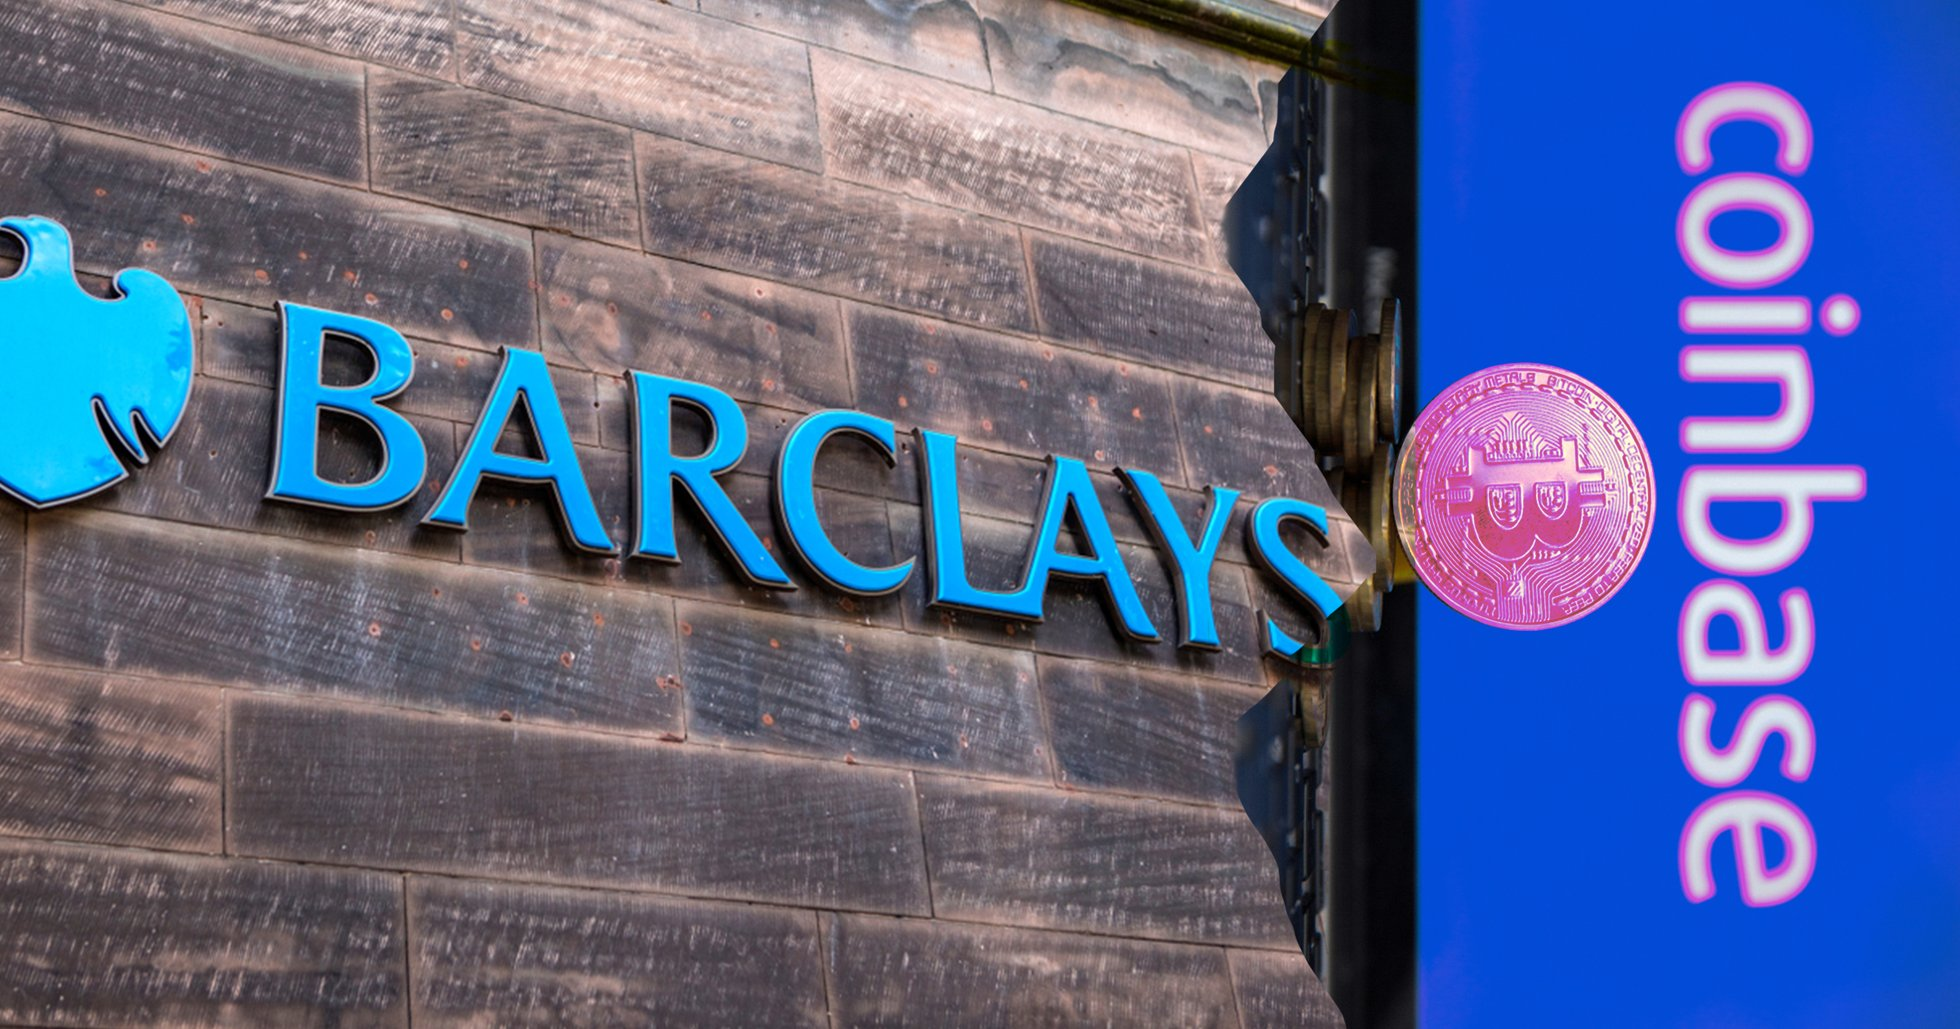 Barclays no longer in partnership with Coinbase – allegedly uncomfortable with cryptocurrencies